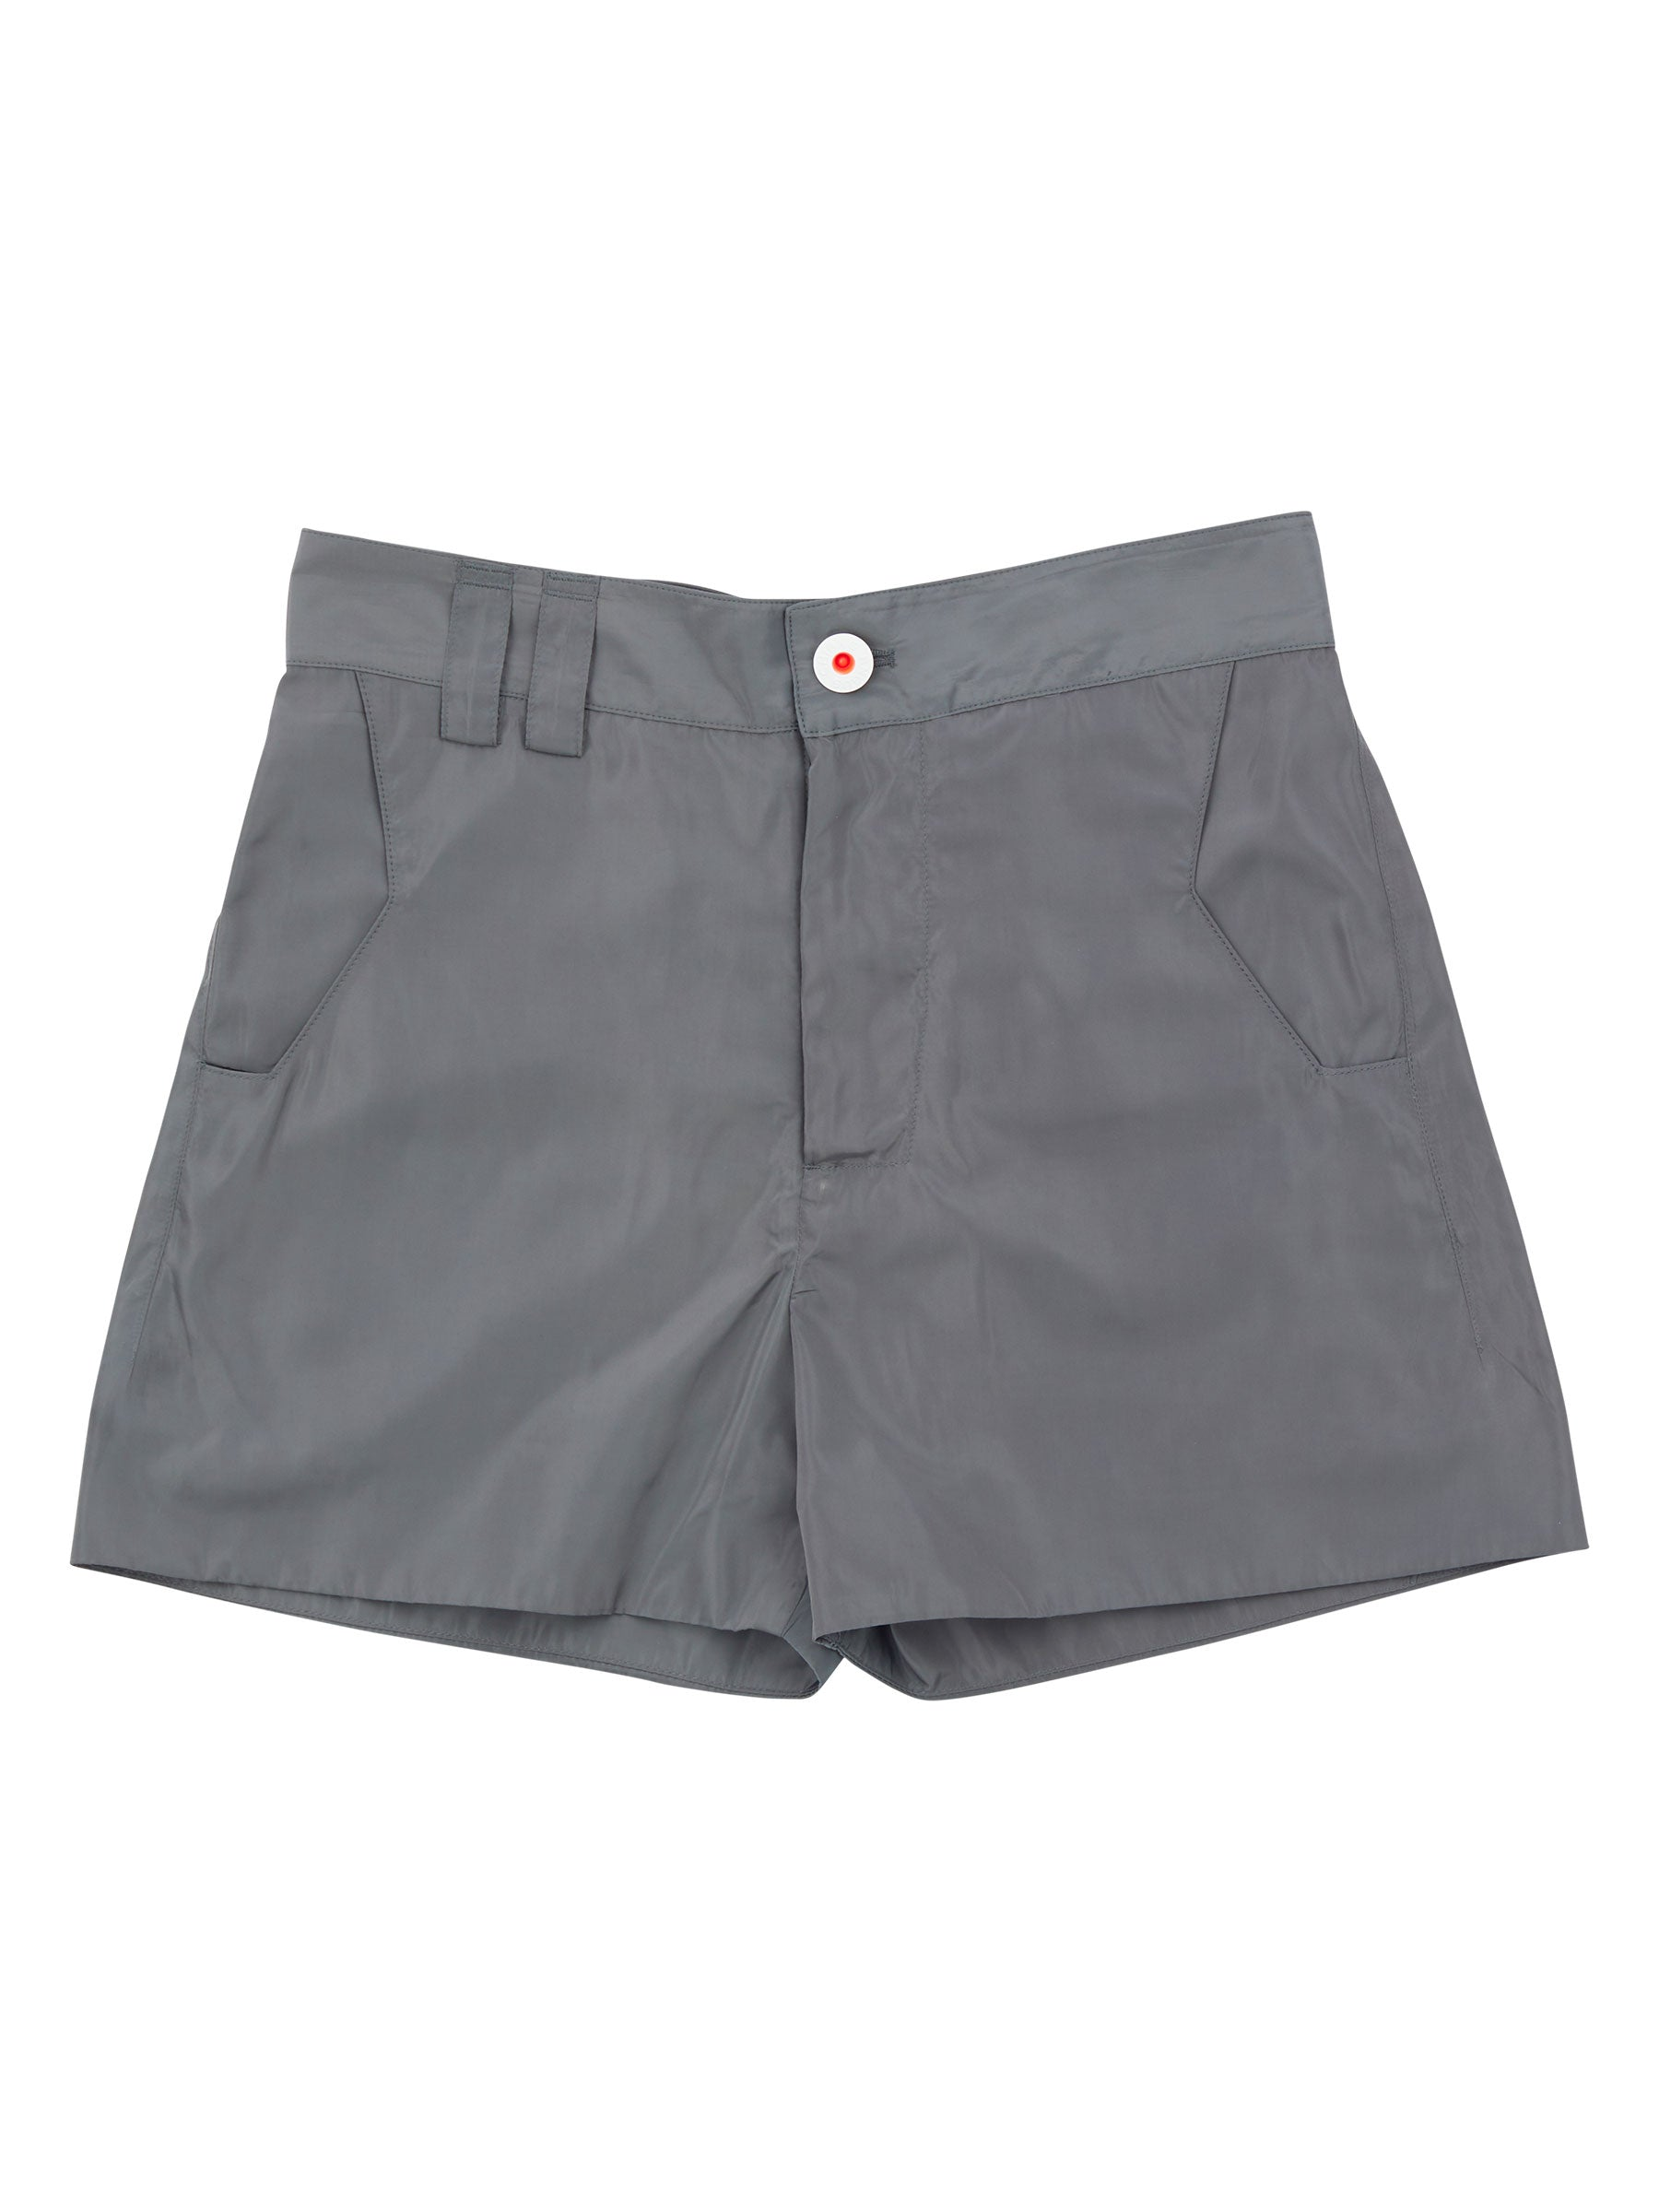 Grandfather Suit Shorts